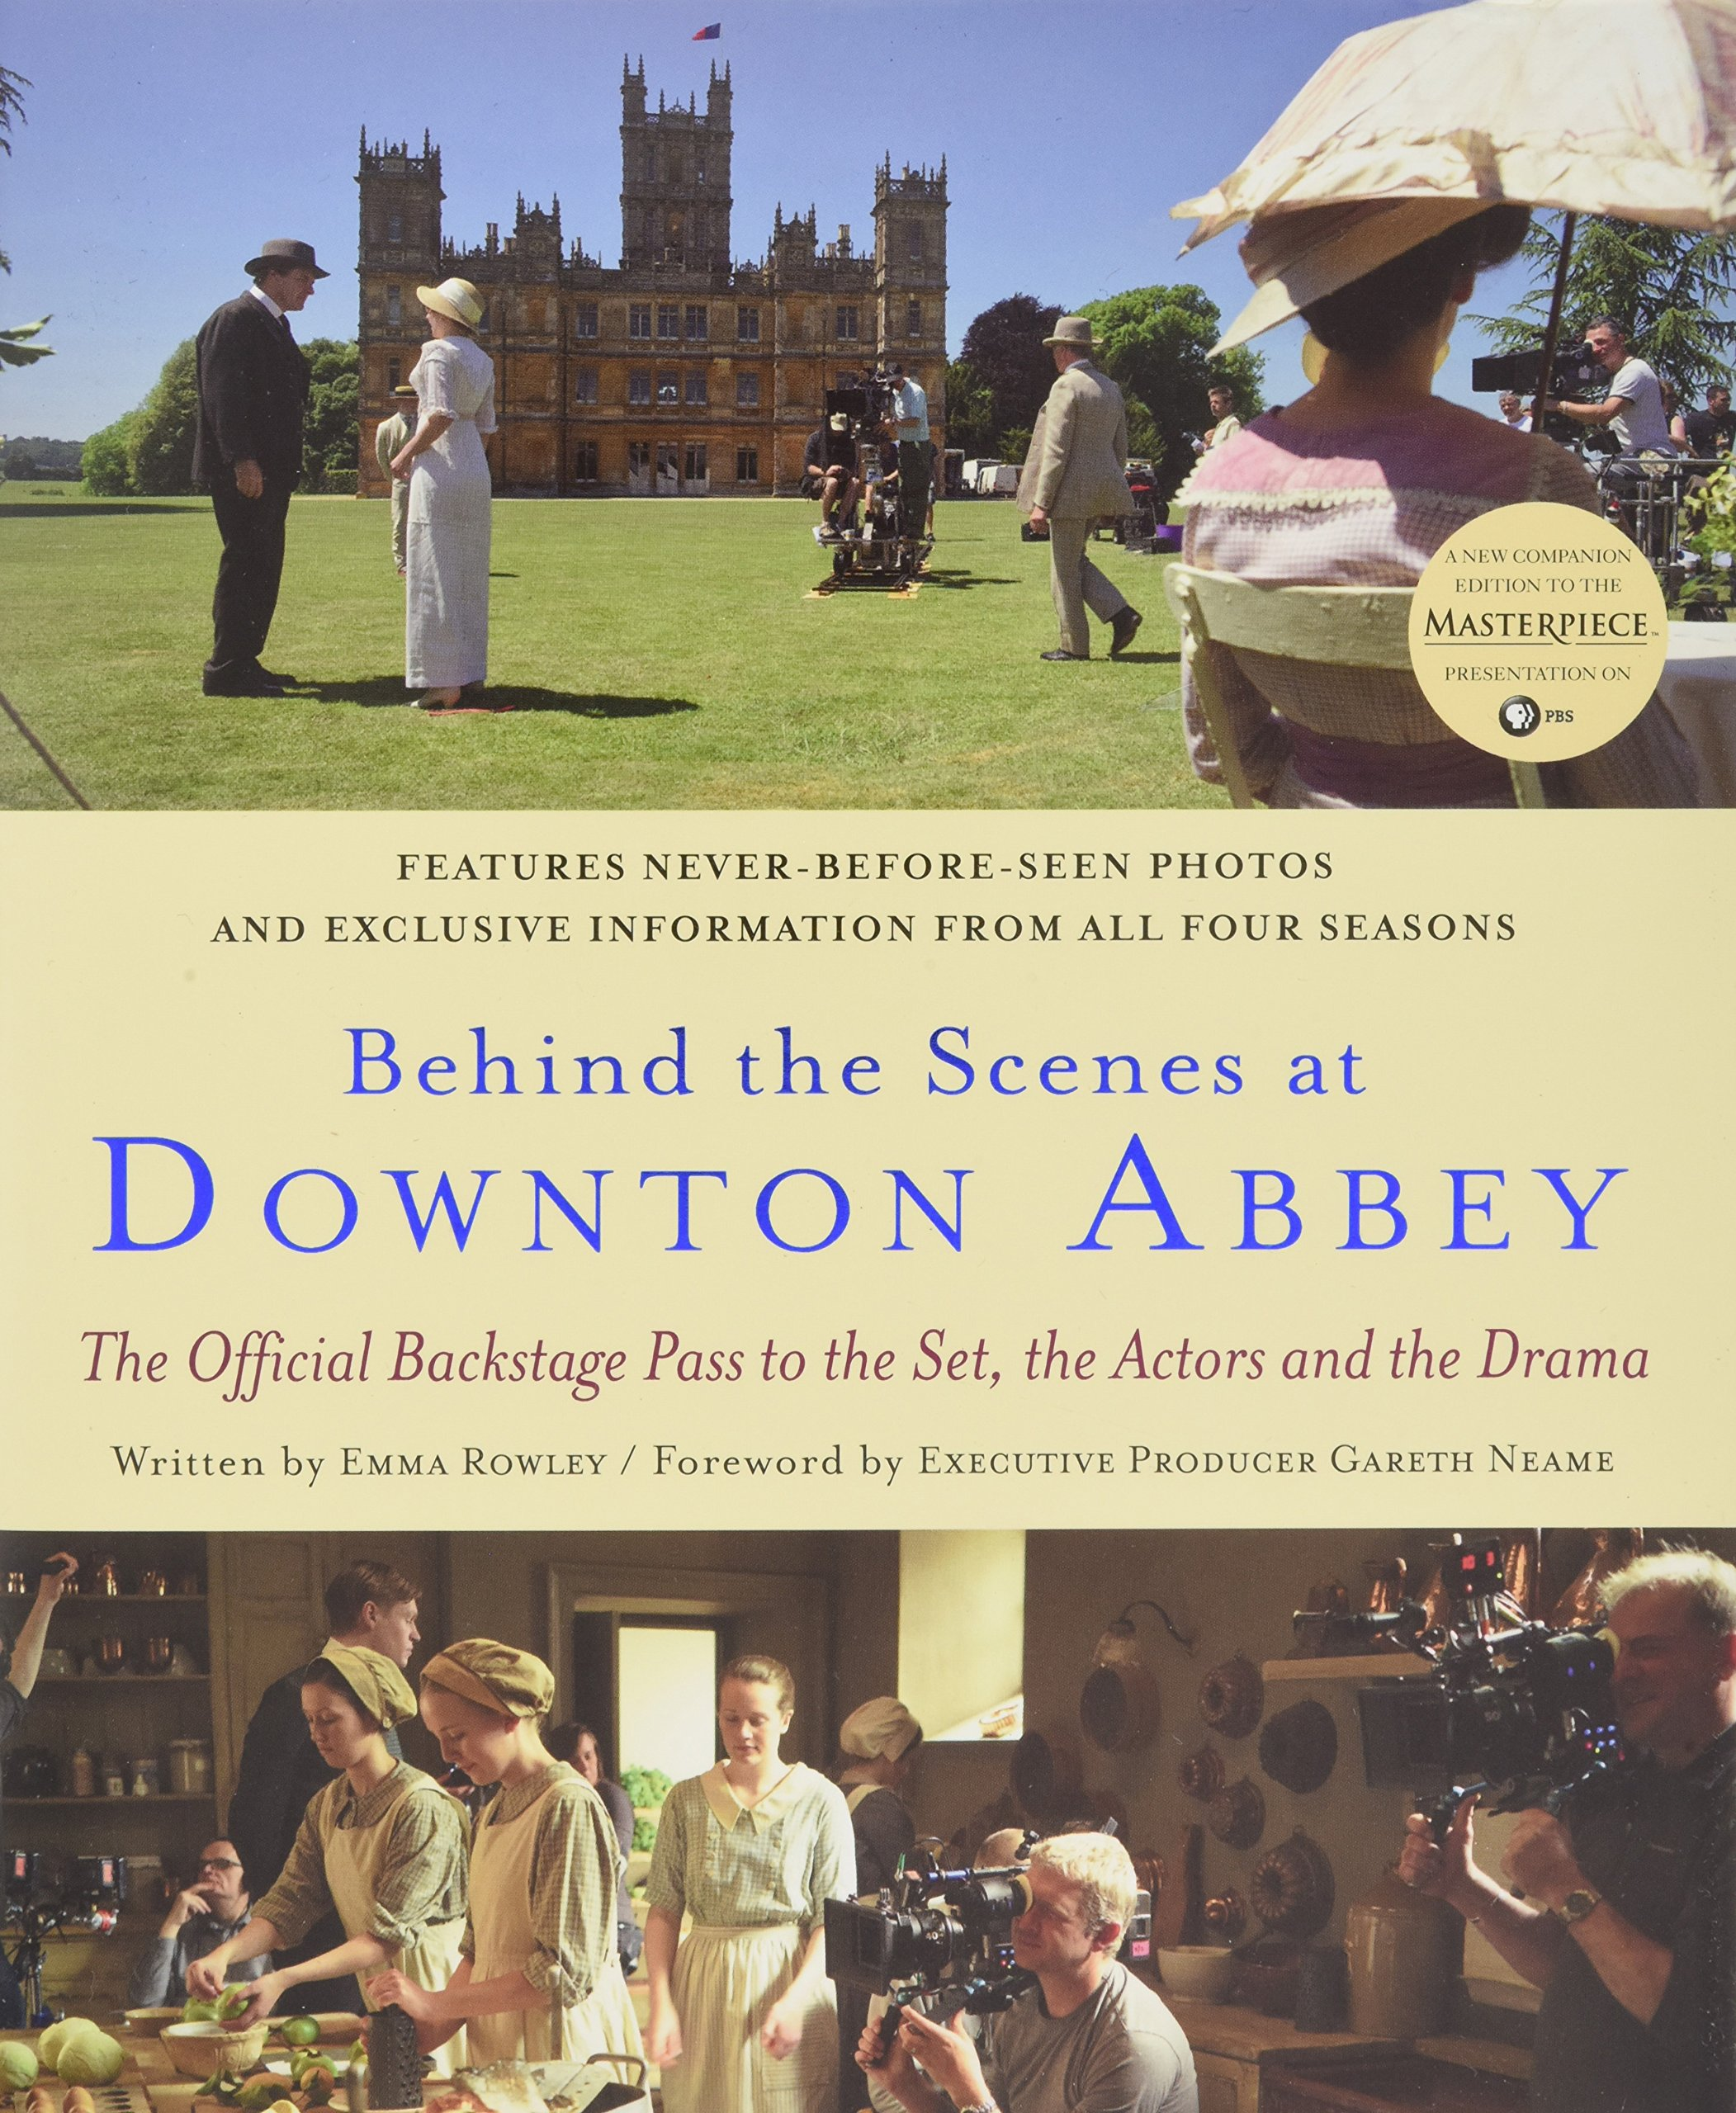 Behind the Scenes at Downton Abbey: The Official Backstage